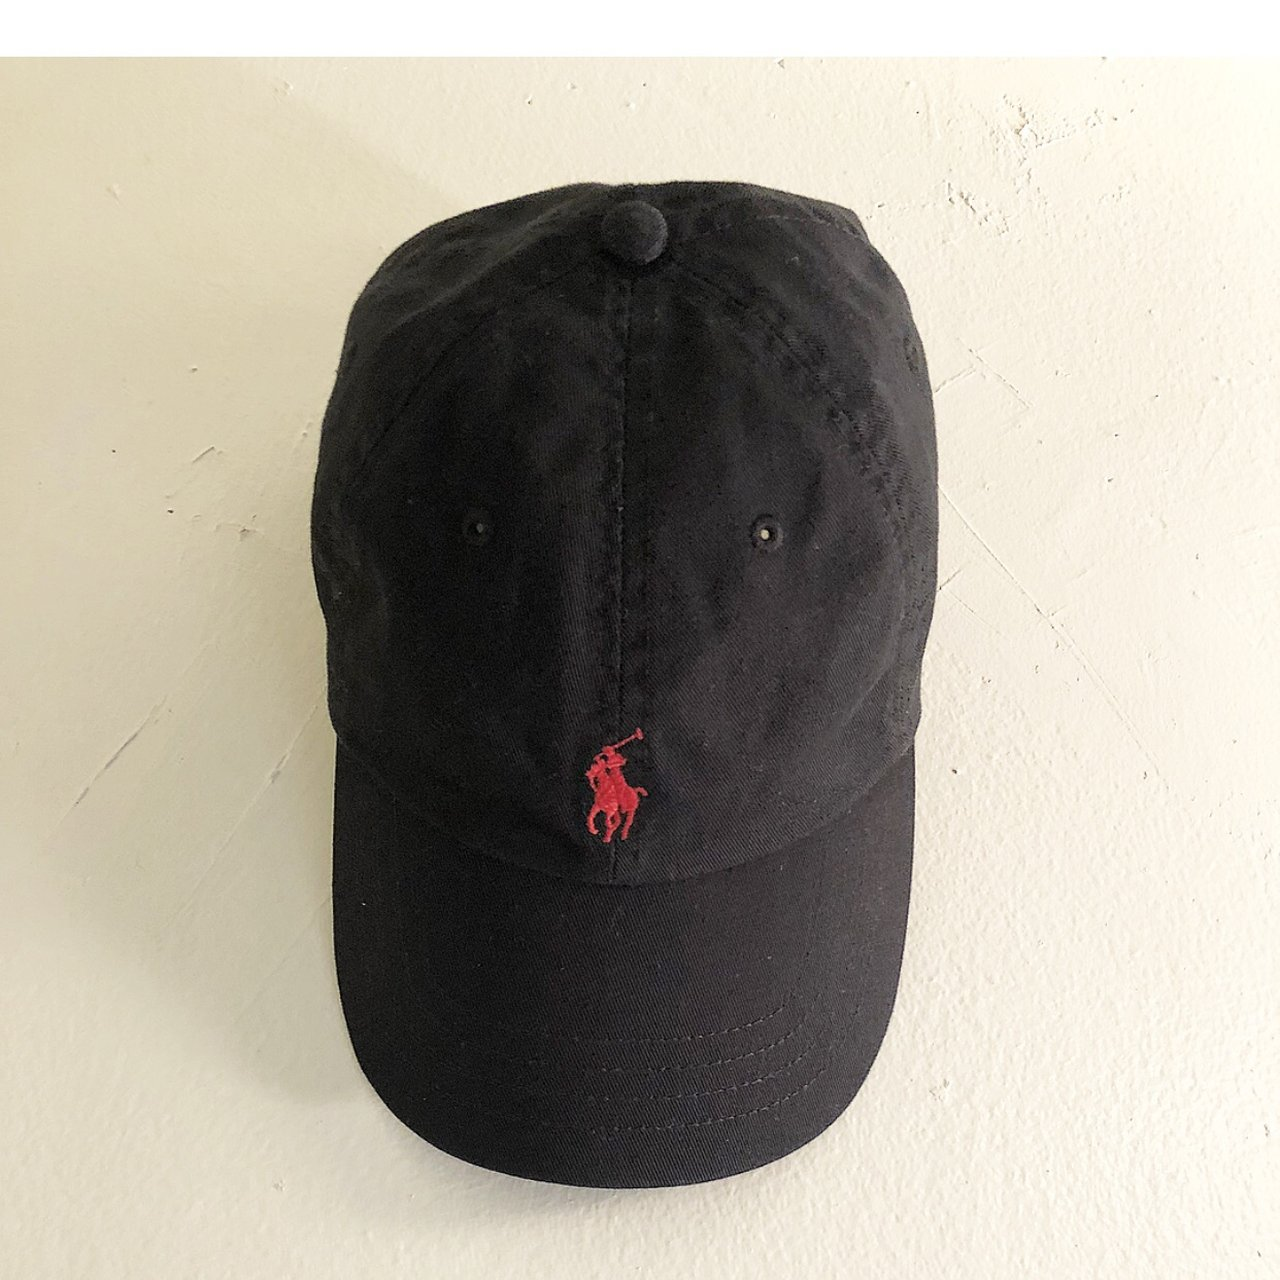 Black Polo hat (Never worn)  Polo  Hat - Depop 3a1ef170c7e